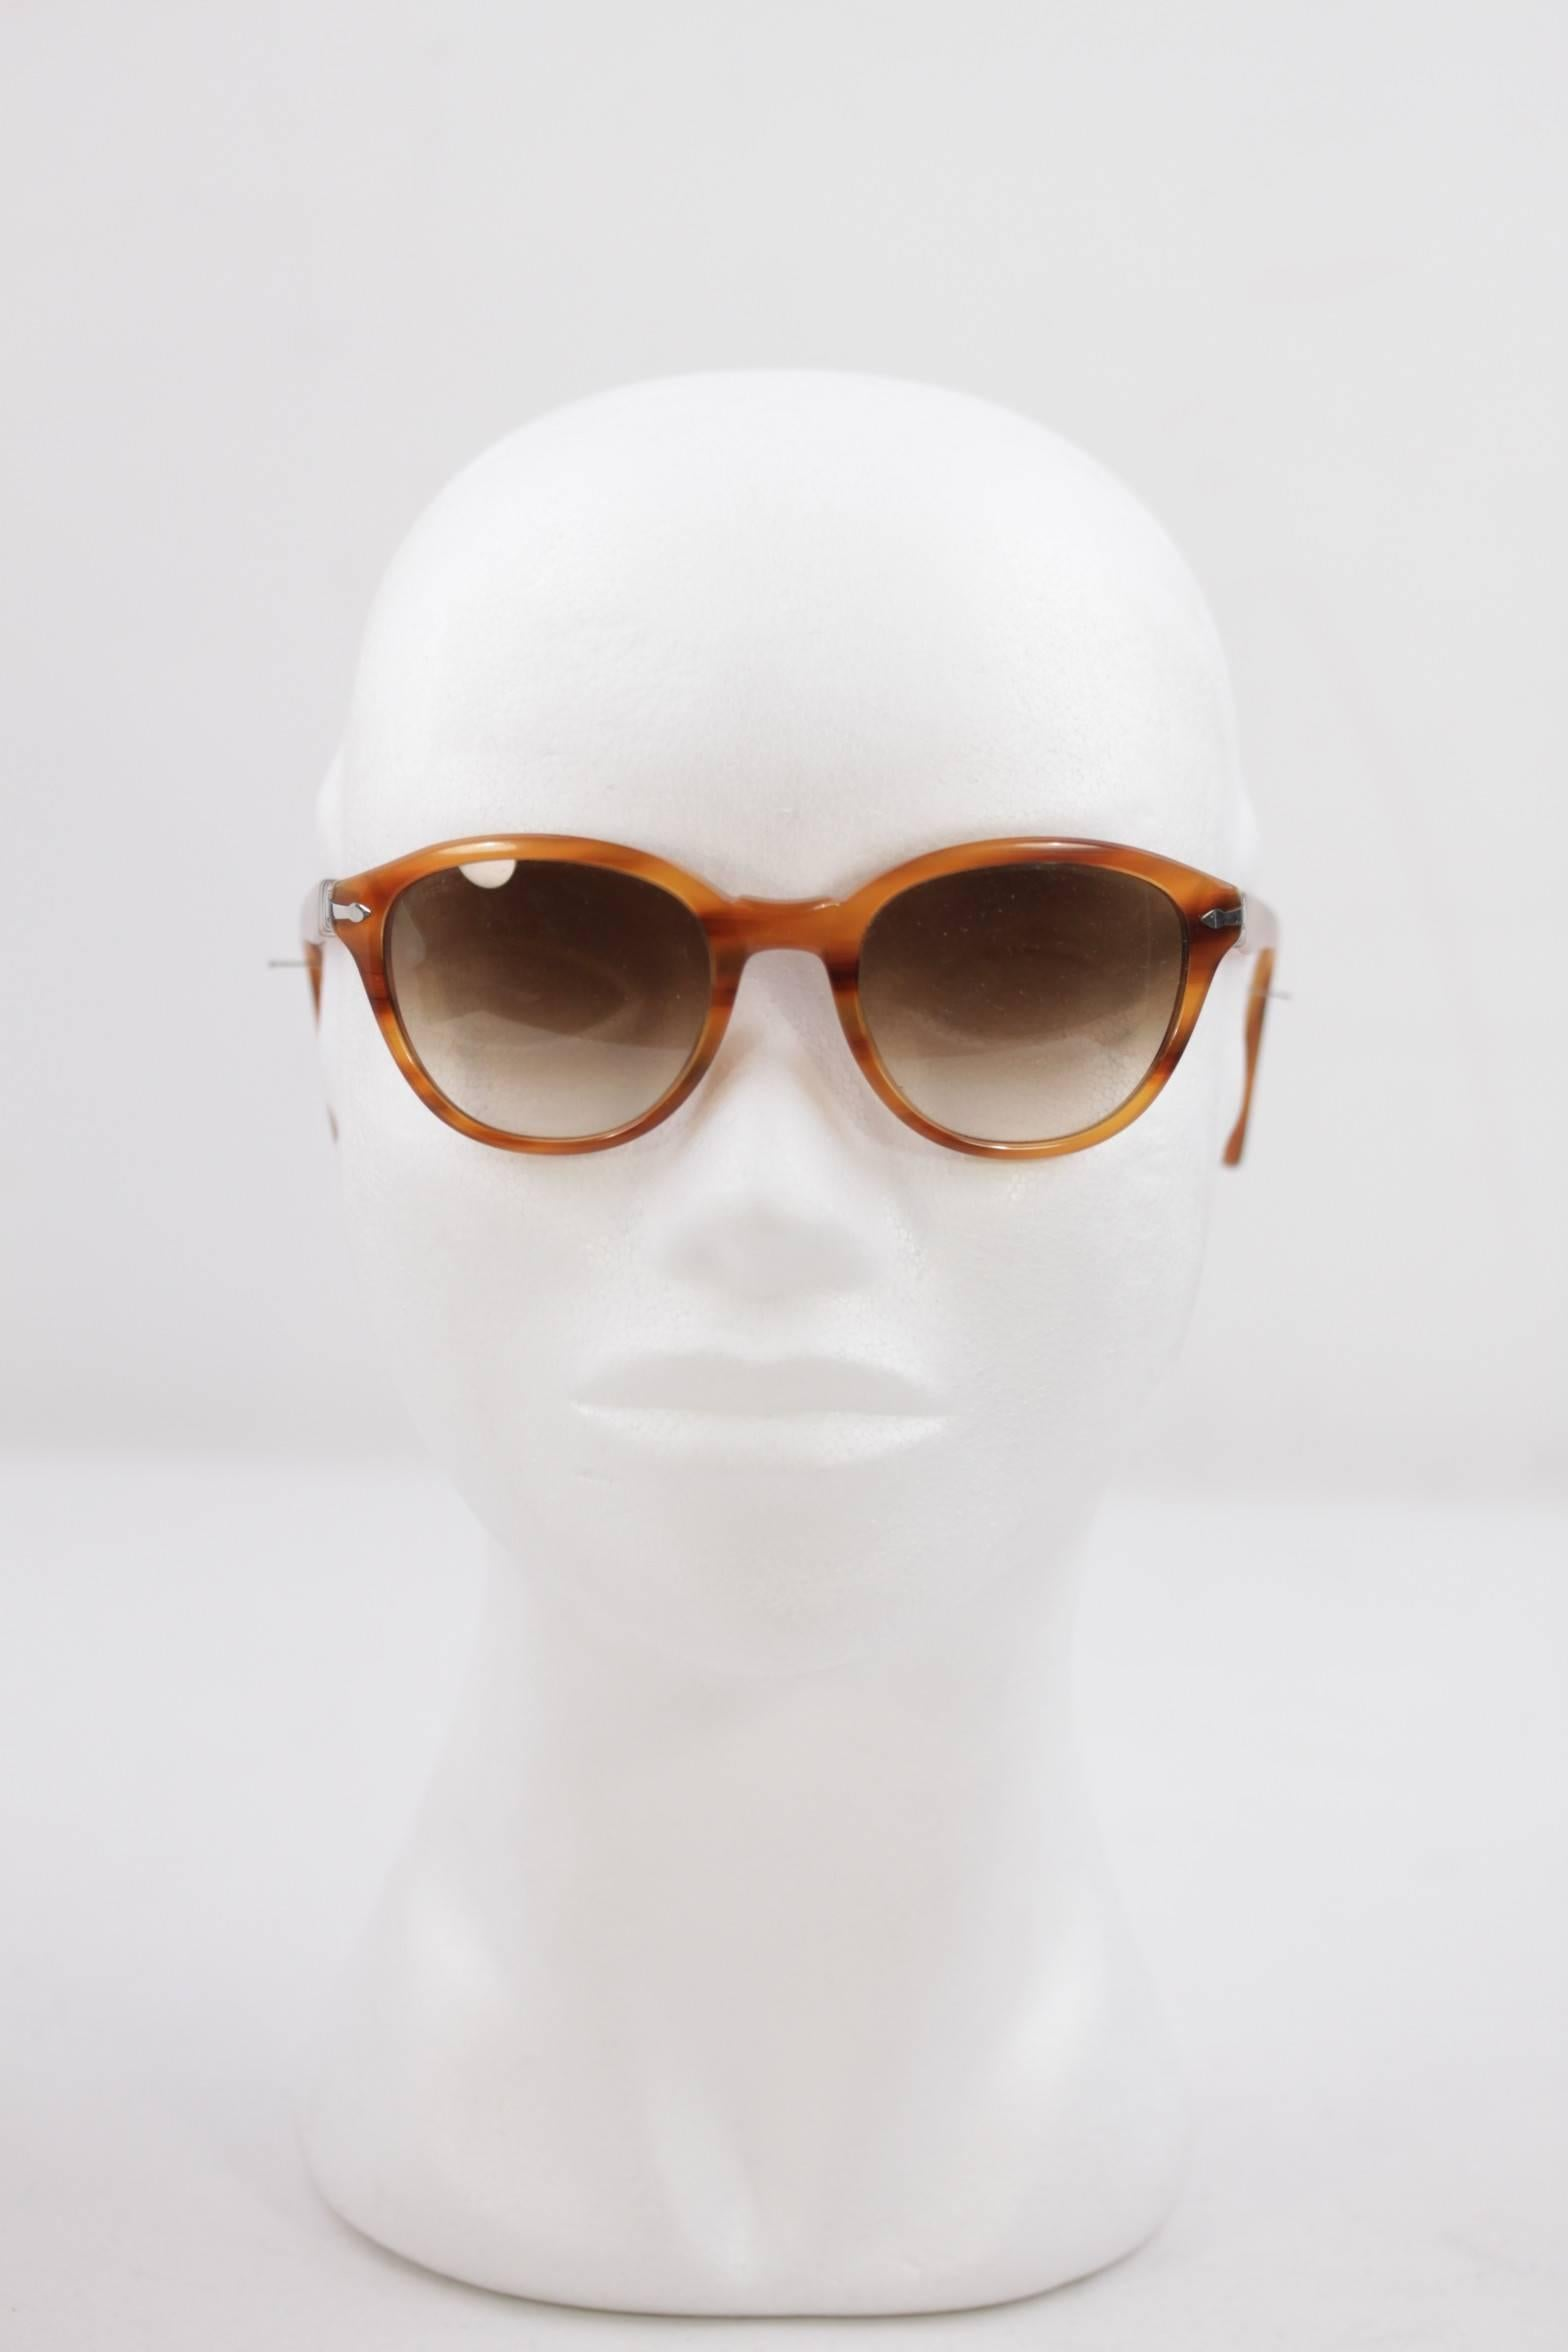 61d50c9410c70 PERSOL Tan SUNGLASSES 3025 S Capri Edition EYEWEAR Eyeglasses SHADES For  Sale at 1stdibs